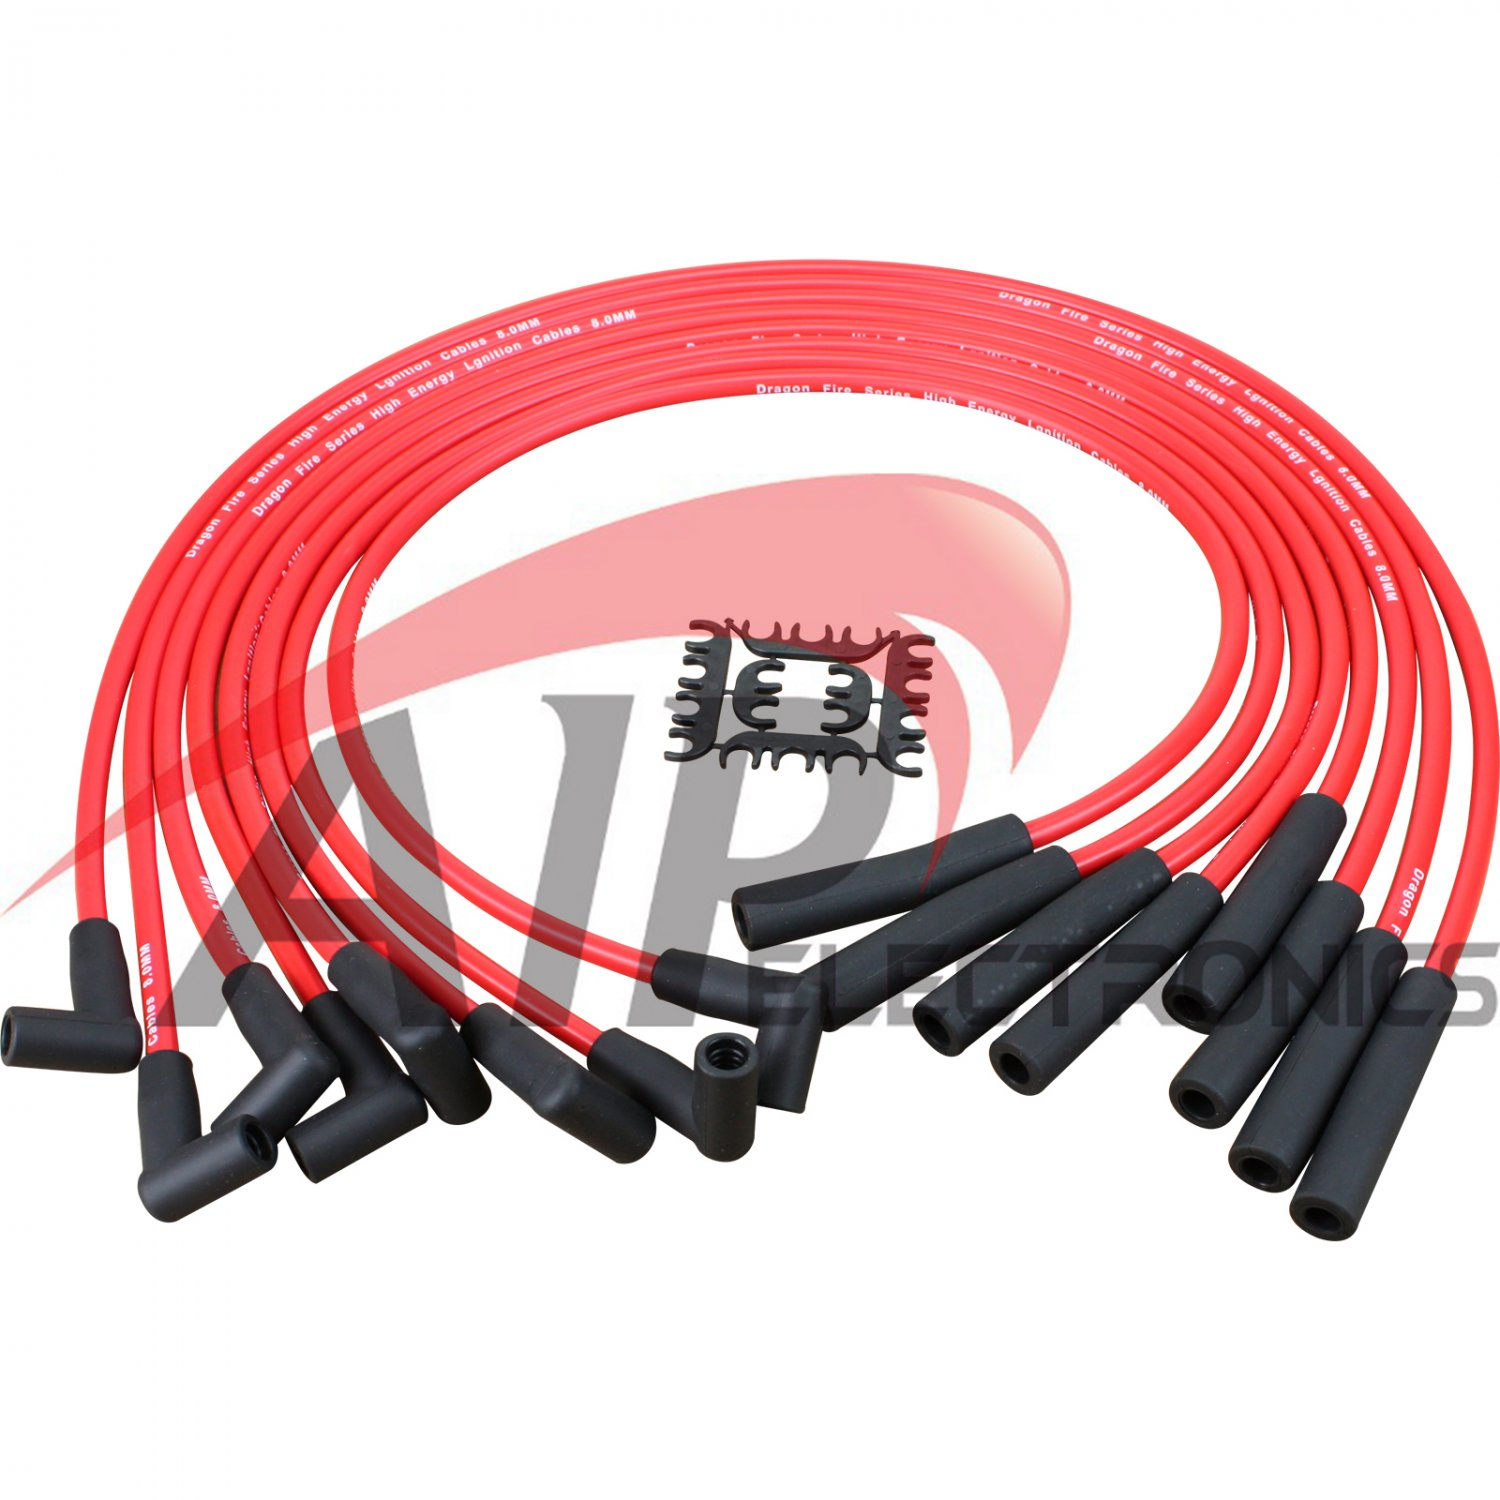 Brand New Dragon Fire Hei Spark Plug Wires For Ford Fe 290